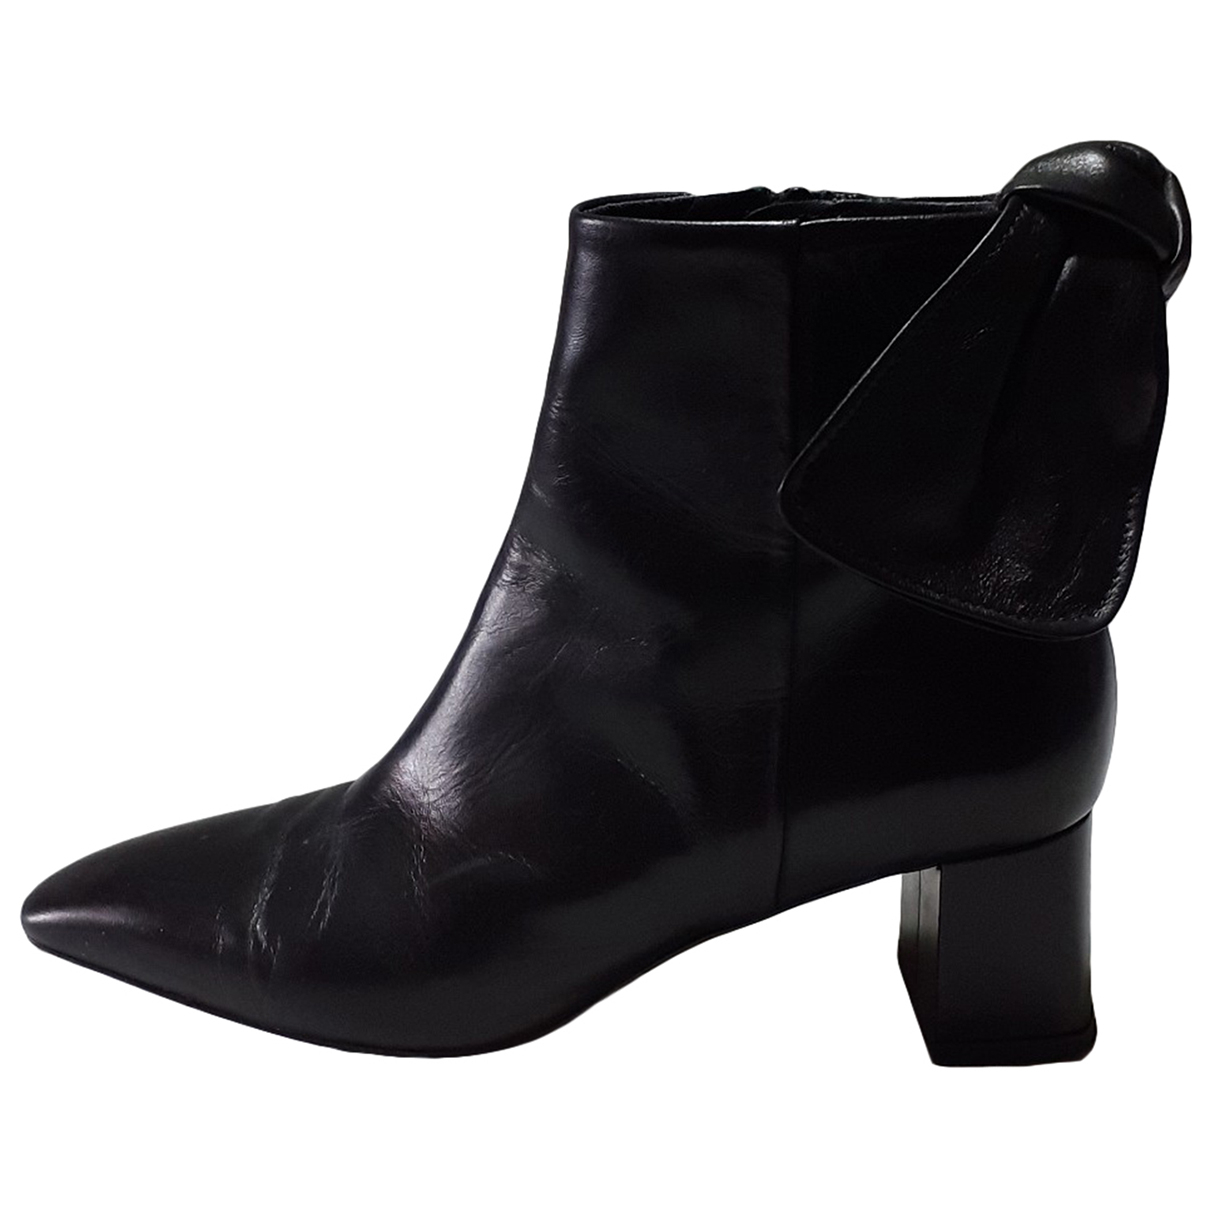 Uterque N Black Leather Boots for Women 35 EU